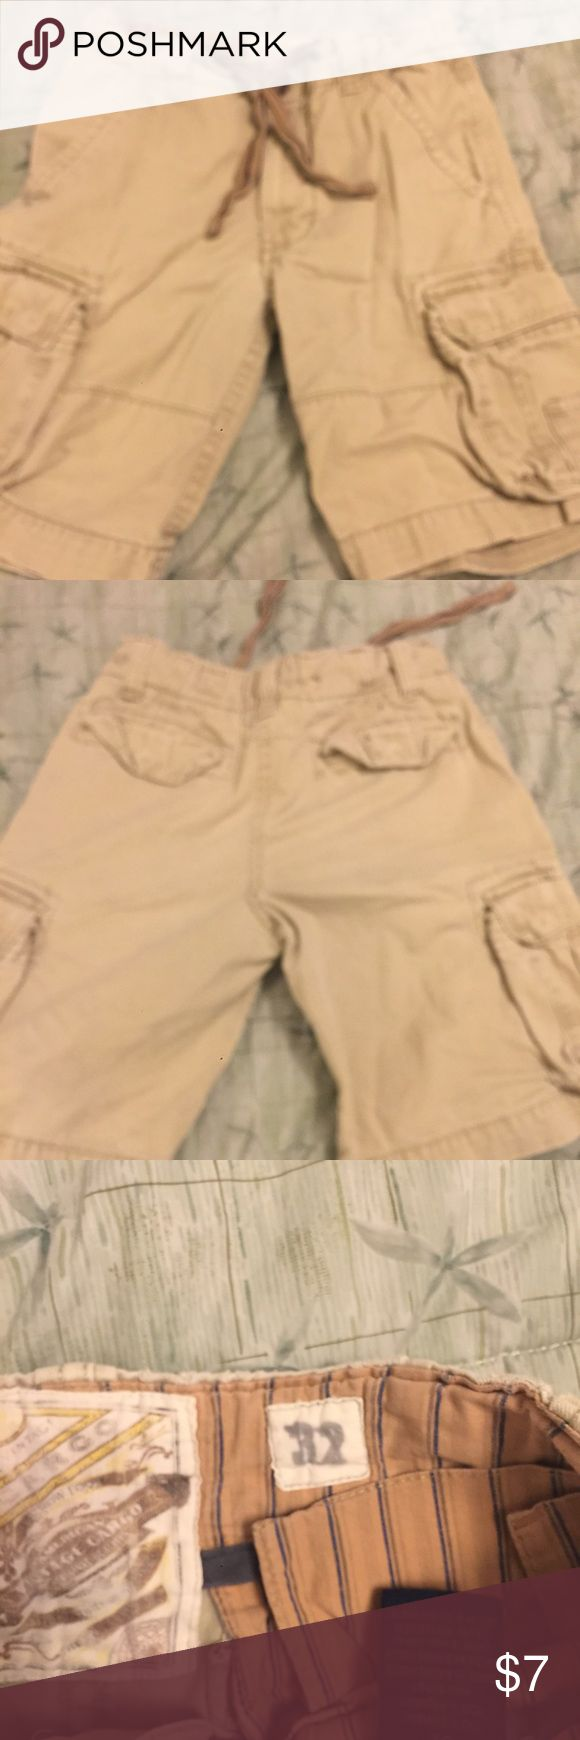 Tan Mens cargo shorts Size 32 Mens tan cargo shorts. Has drawstring and button closure. Has small spot that's only visible in the light by the front pocket. Priced to sell. Shorts Cargo